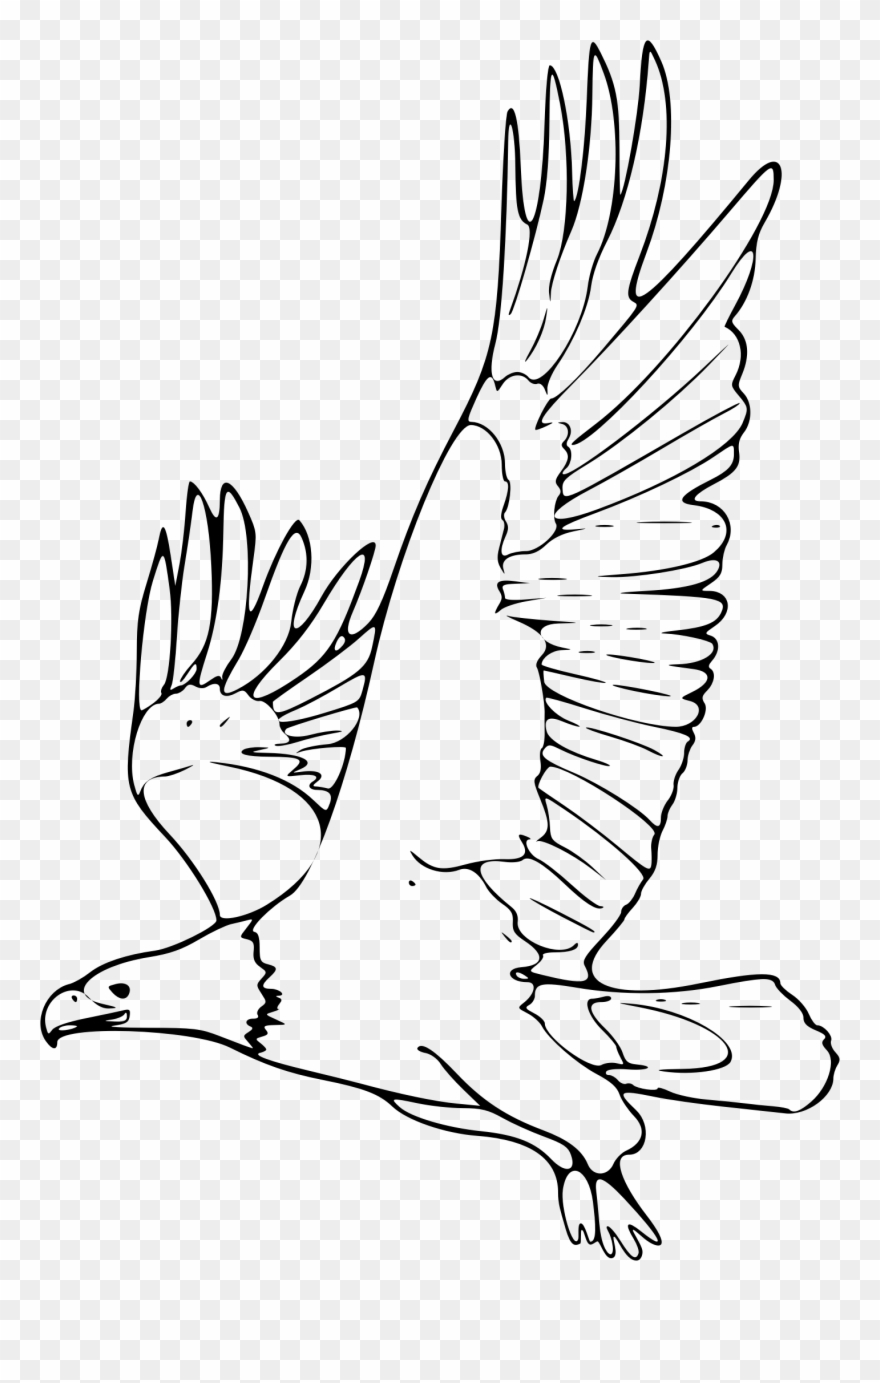 American bald eagle clipart black and white vector royalty free stock Bald Eagle Clipart - Outline Picture Of Eagle - Png Download ... vector royalty free stock